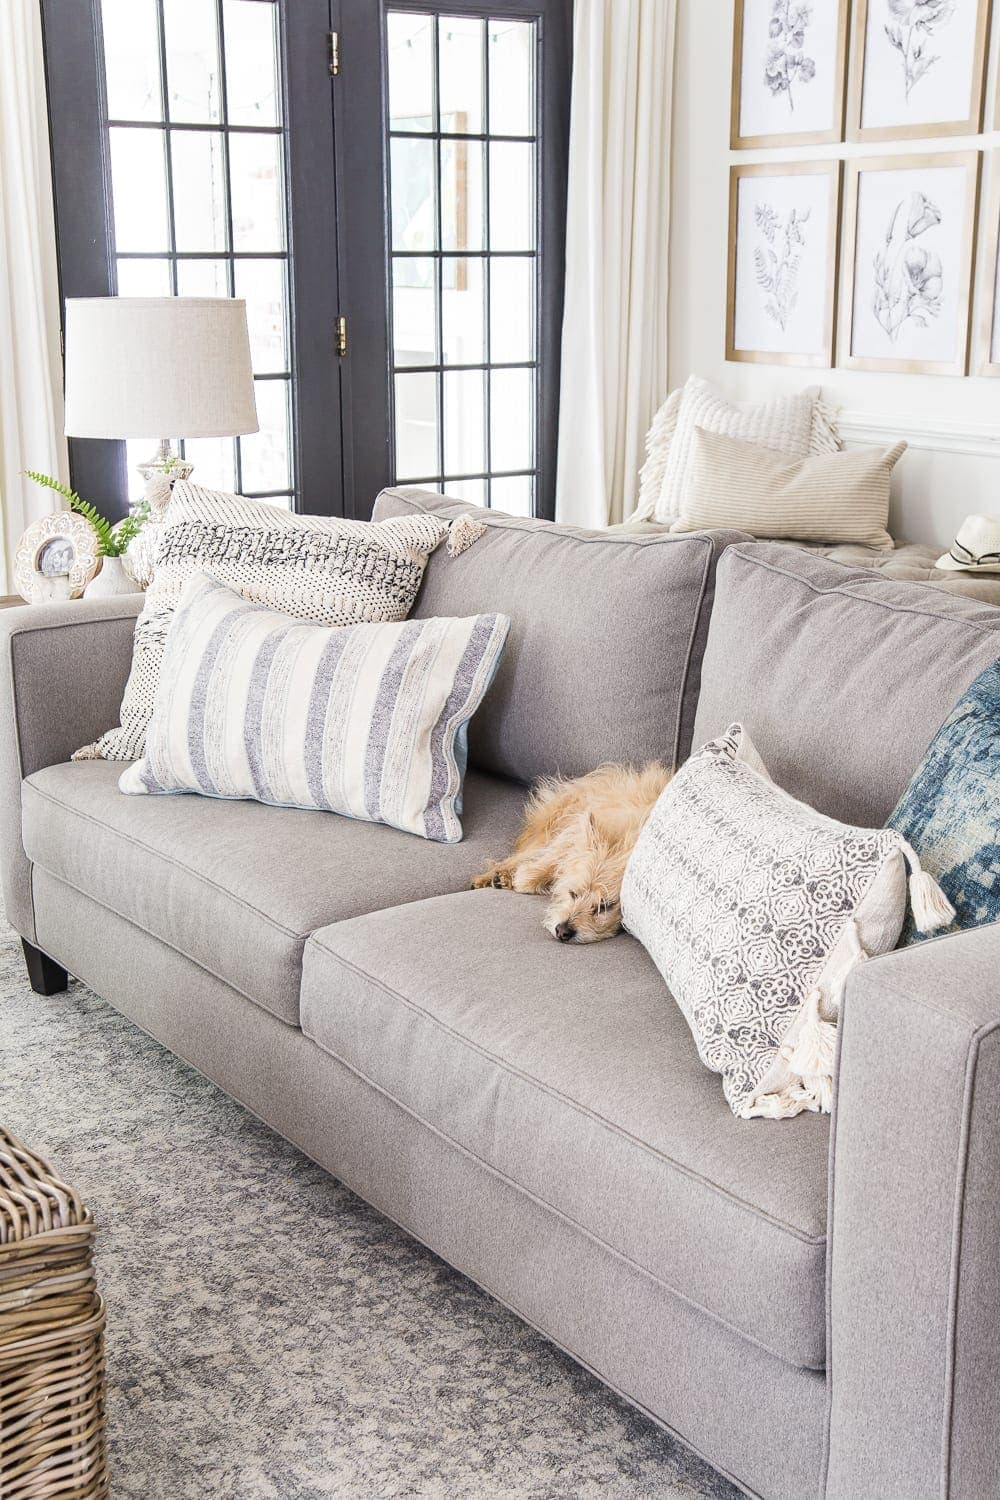 """A full review about our Minna Home sofa that stands up to kid messes and pet stains, and why we love Modsy's design services to """"try on"""" furniture."""